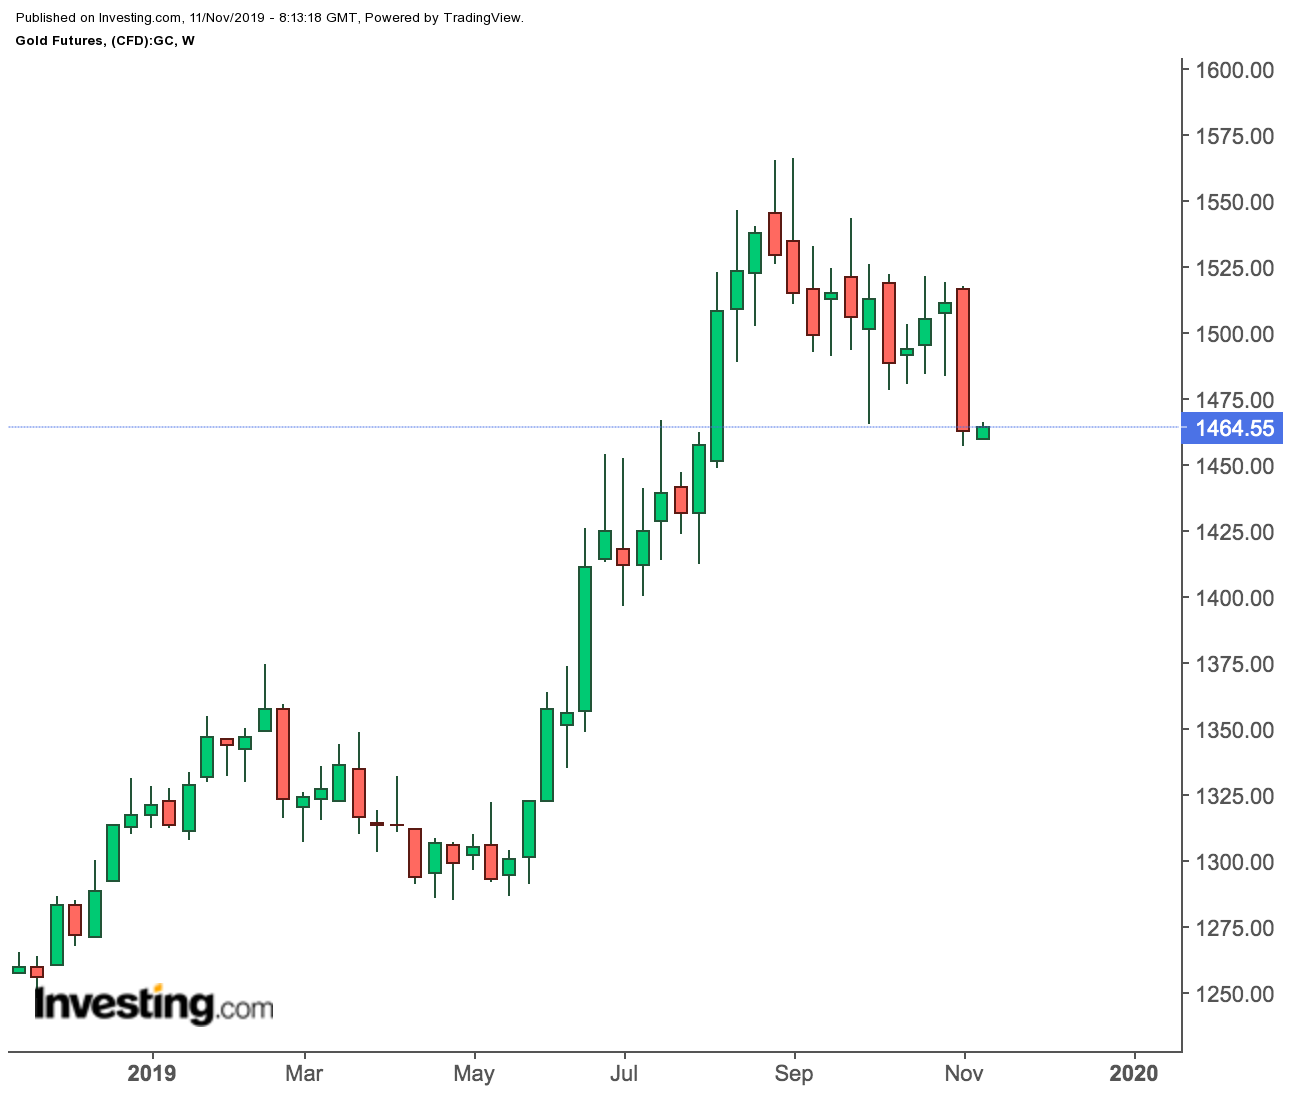 Gold Futures Weekly Price Chart